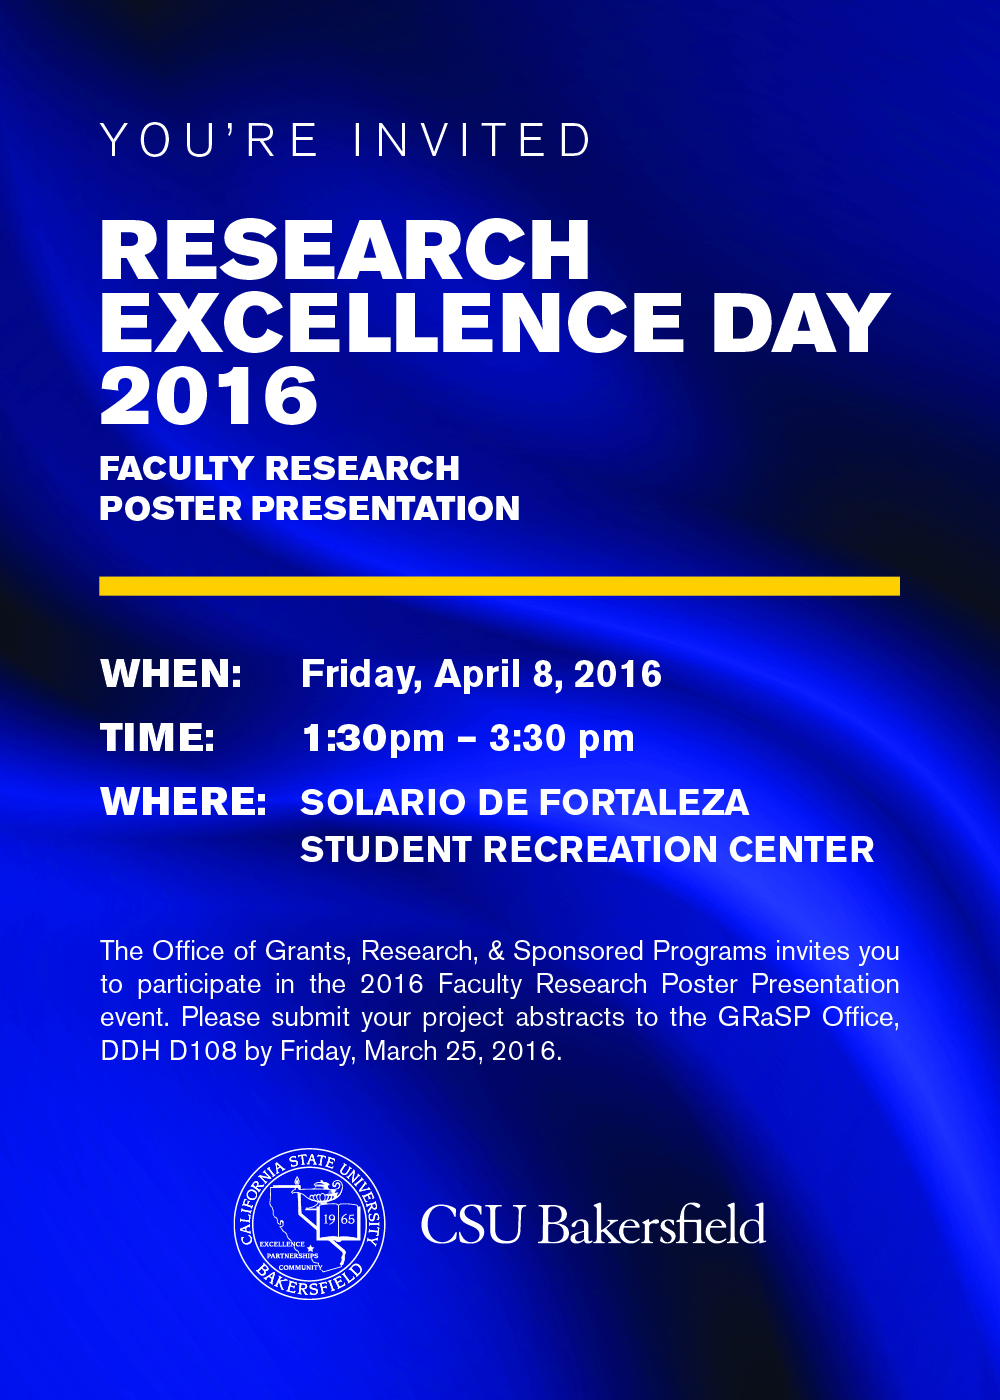 2016 faculty research poster presentation